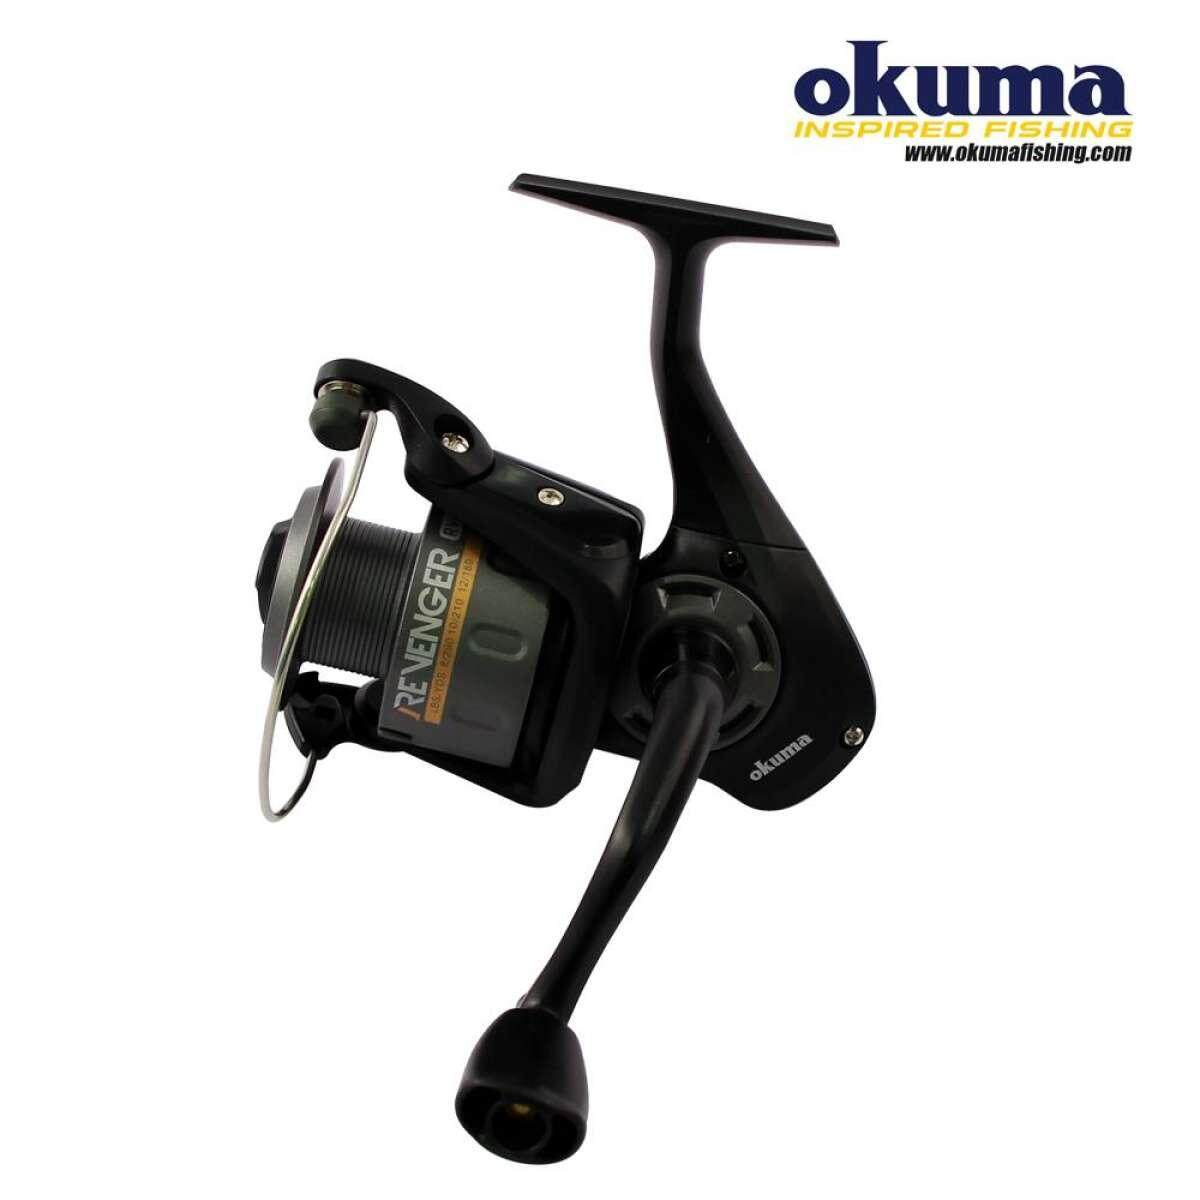 Okuma Fishing Reels price in Malaysia - Best Okuma Fishing Reels